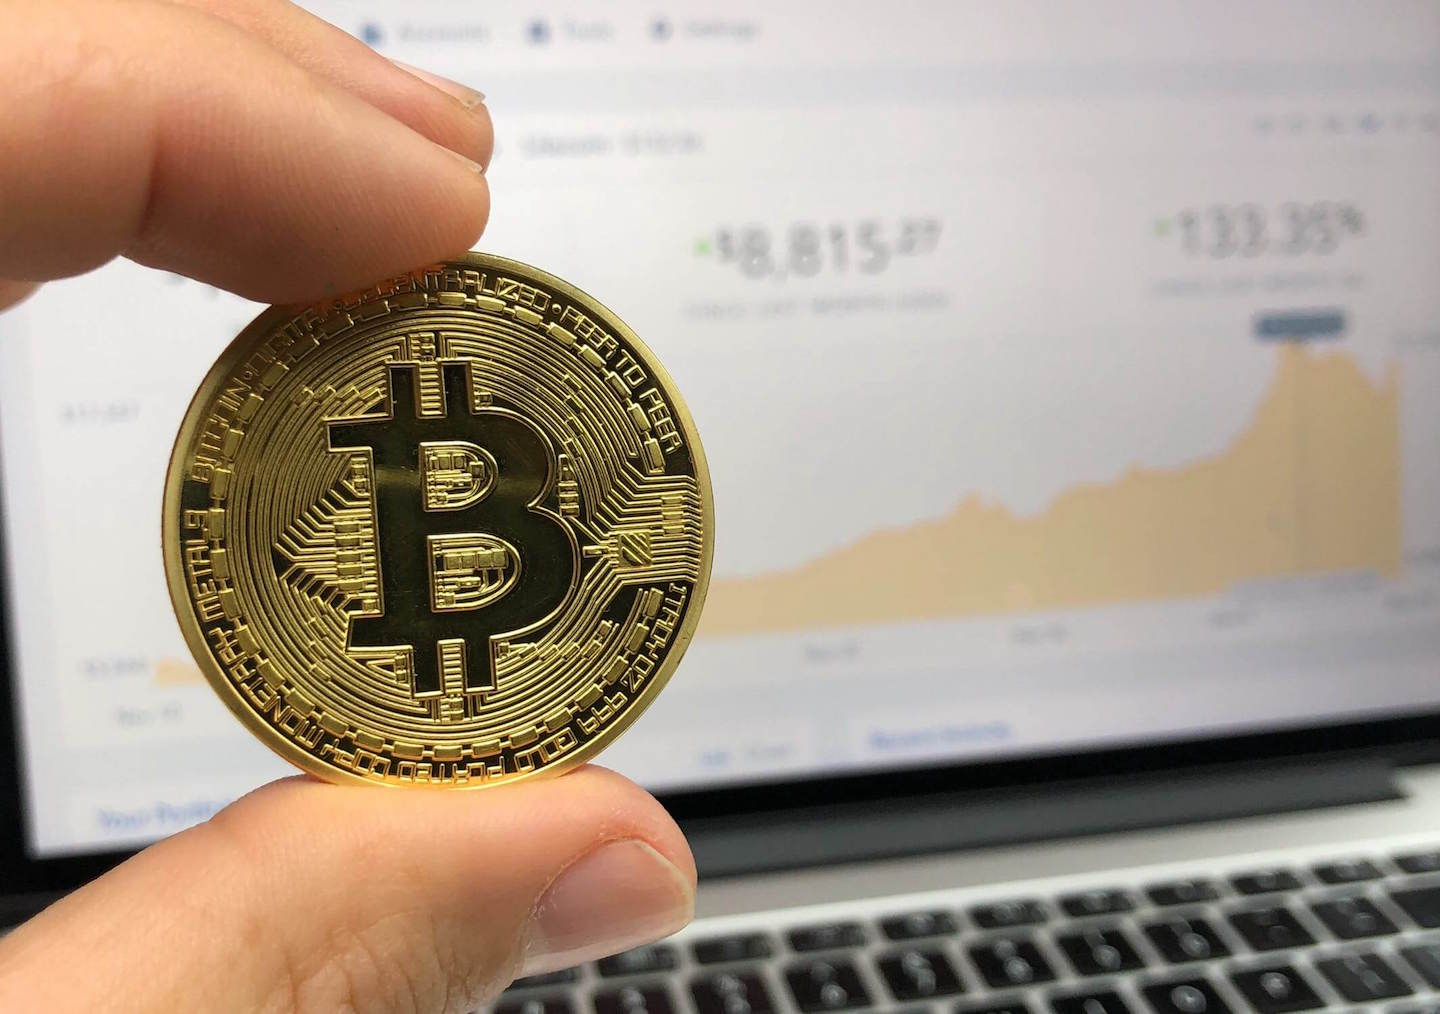 Bitcoin remains as the most popular coin used in the cryptocurrency exchange market.